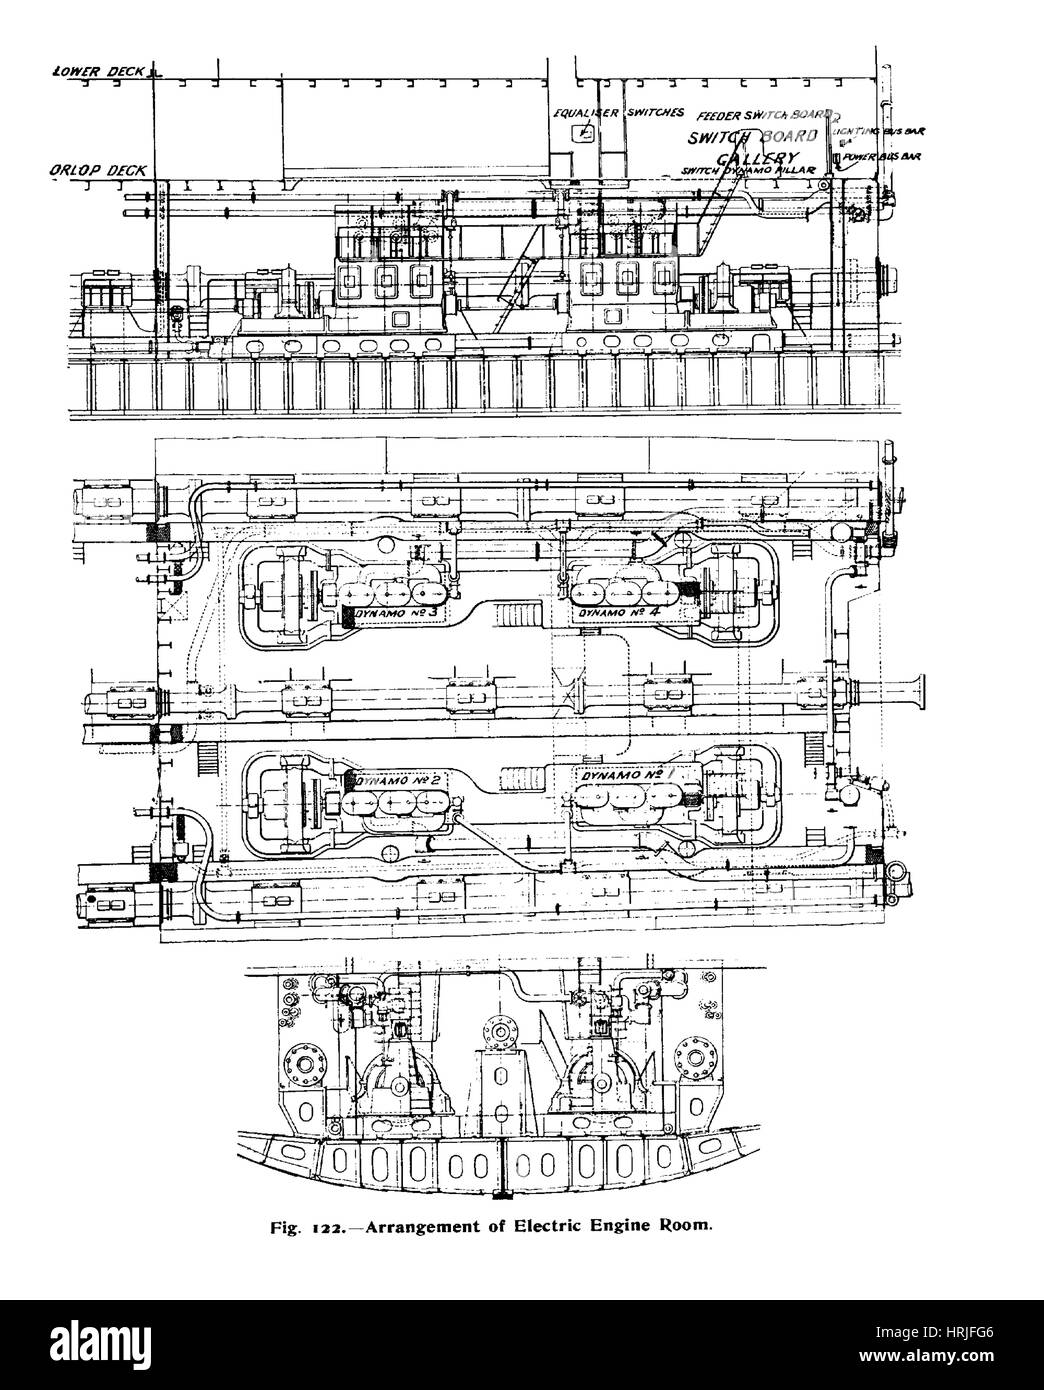 Titanic Ocean Liner Stock Photos Images 1911 Magazine Diagram Free Download Wiring Diagrams Pictures Electrical Machinery Image